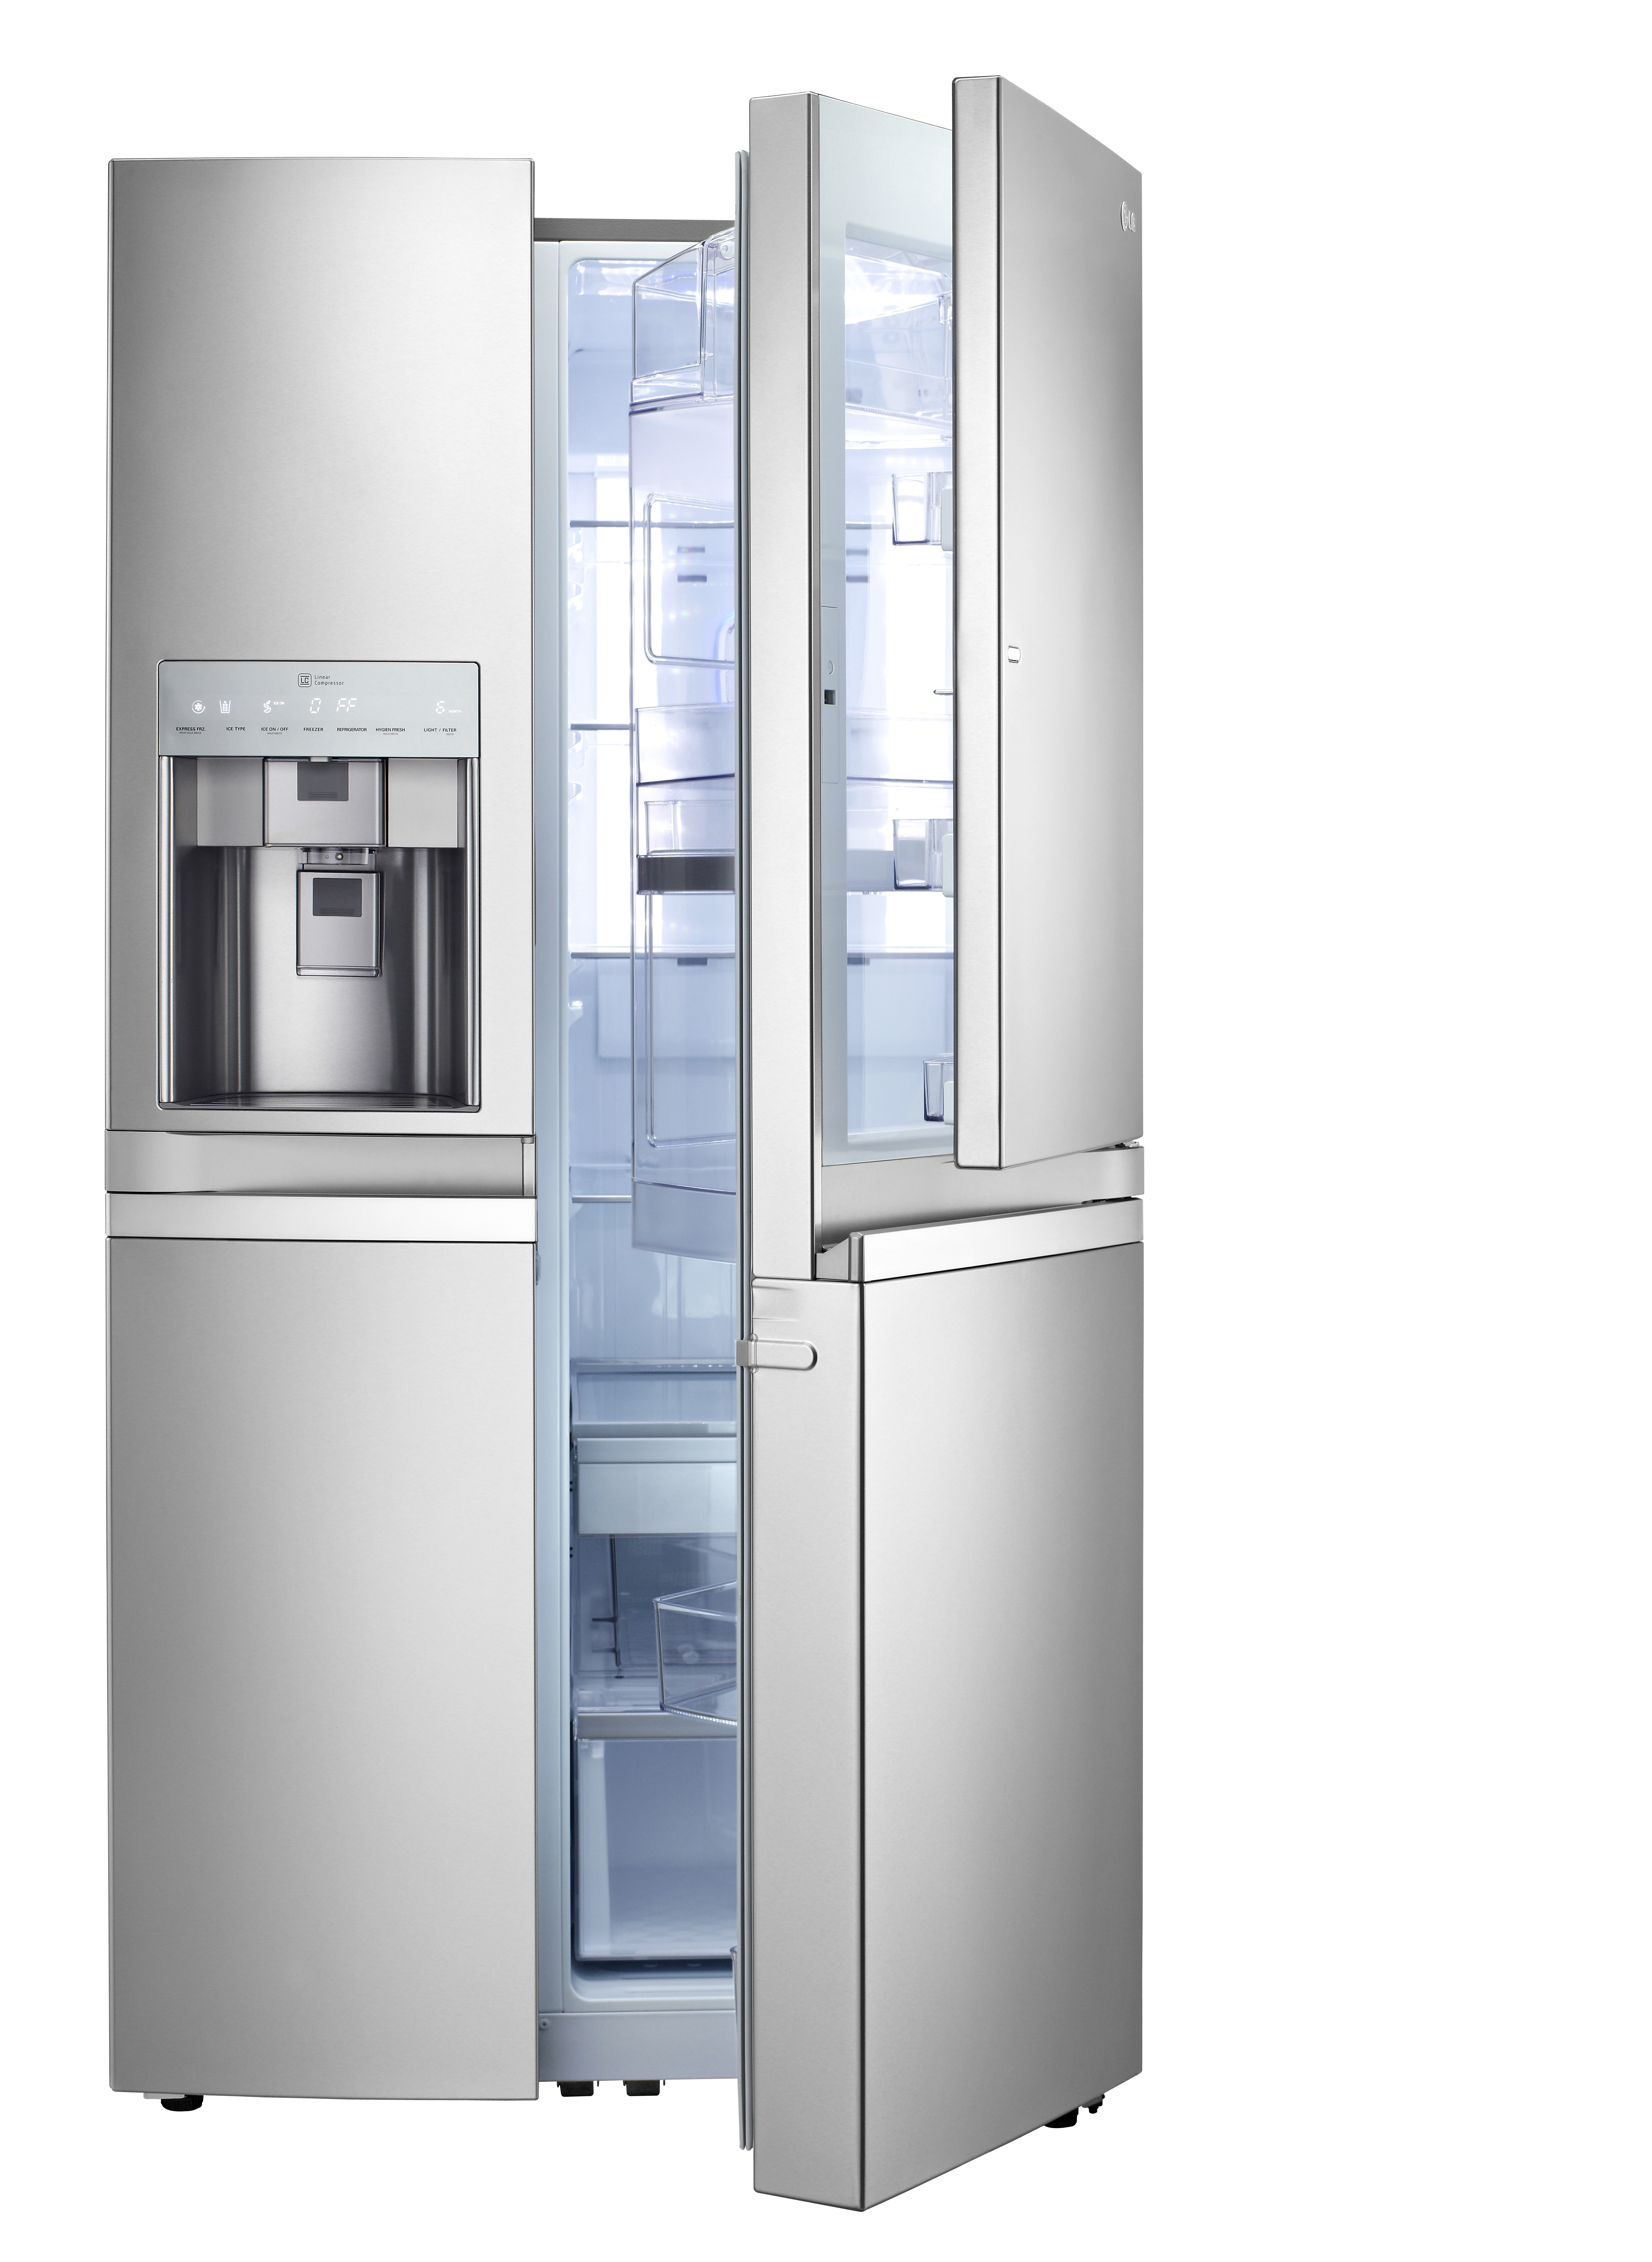 The LG French-Door refrigerator with Door-in-Door feature on the right and ice and water dispenser on the left